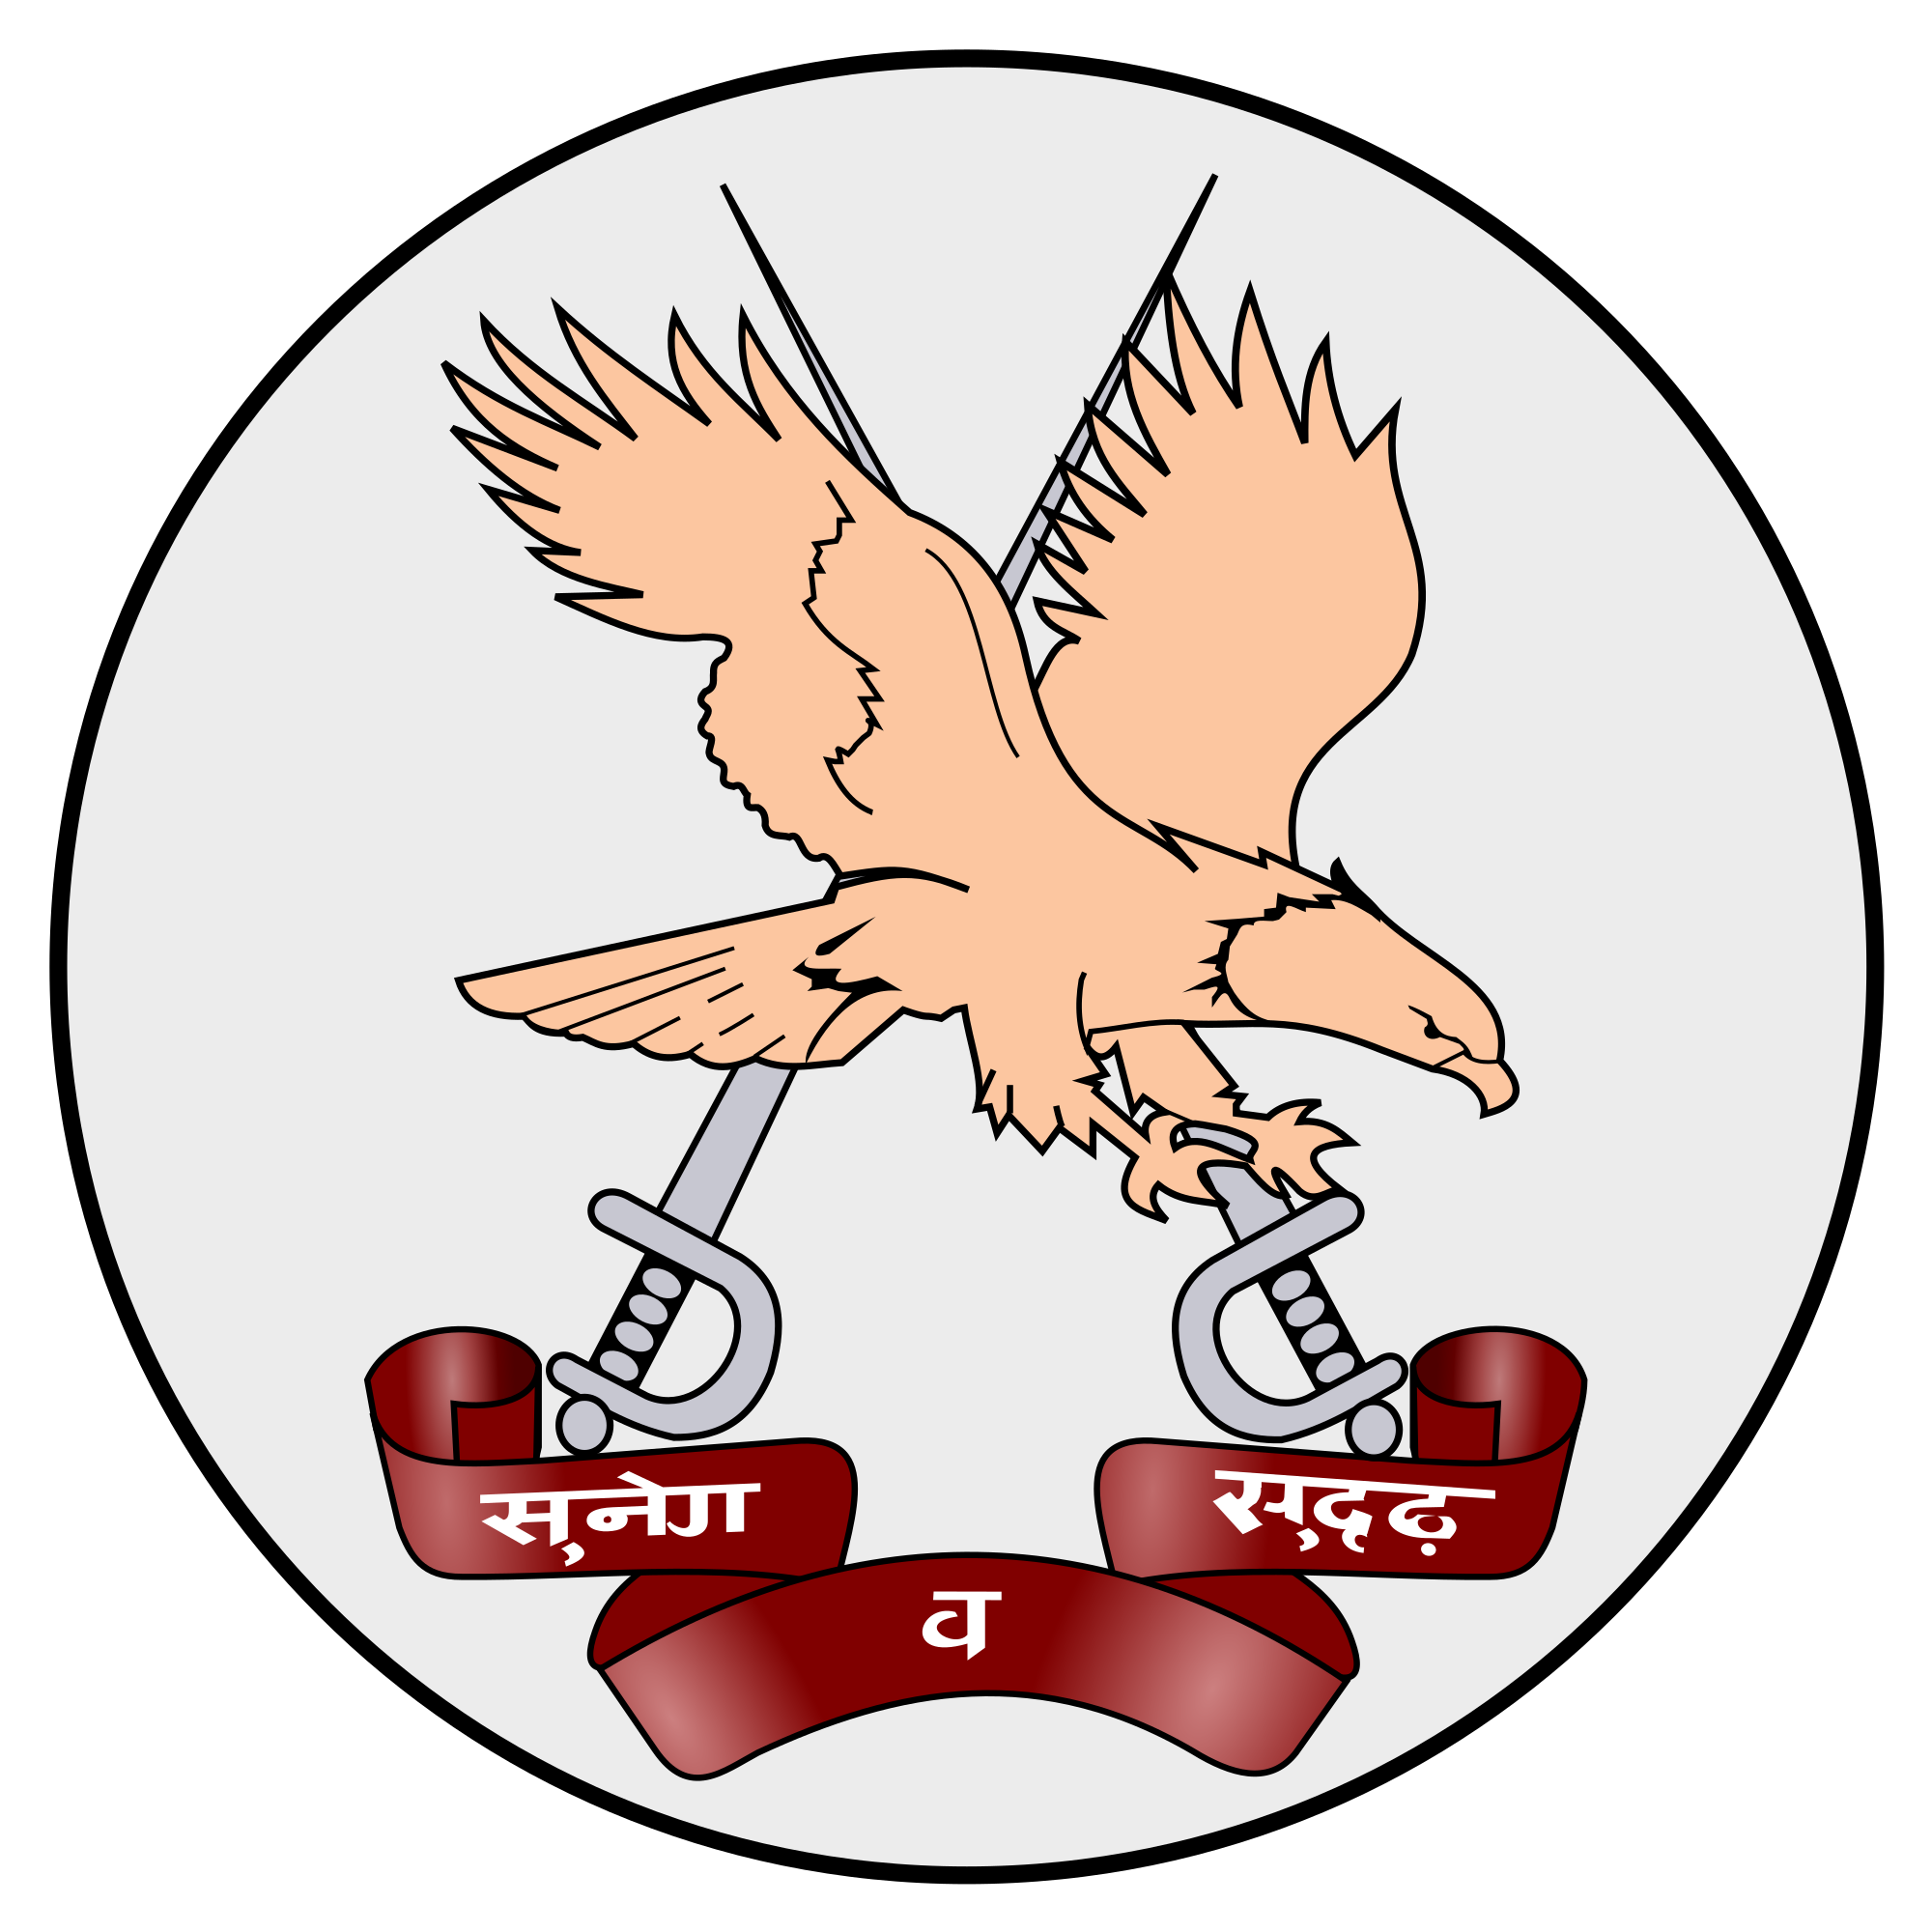 Soldiers clipart soldier indian. Pakistan army general cliparthot